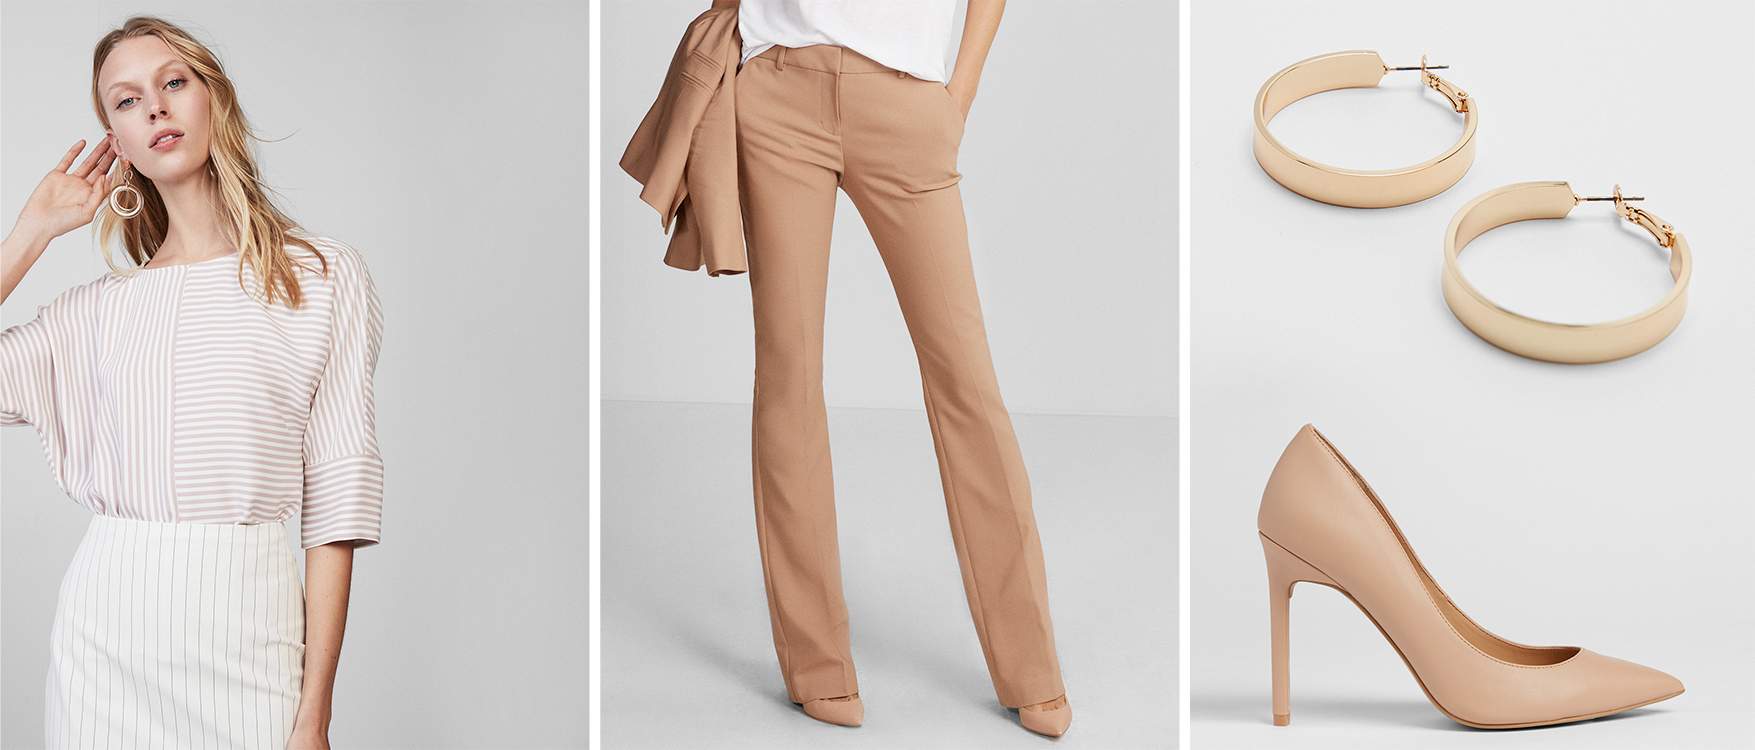 mid-rise-barely-boot-pant-striped-top-thin-high-heels-earrings